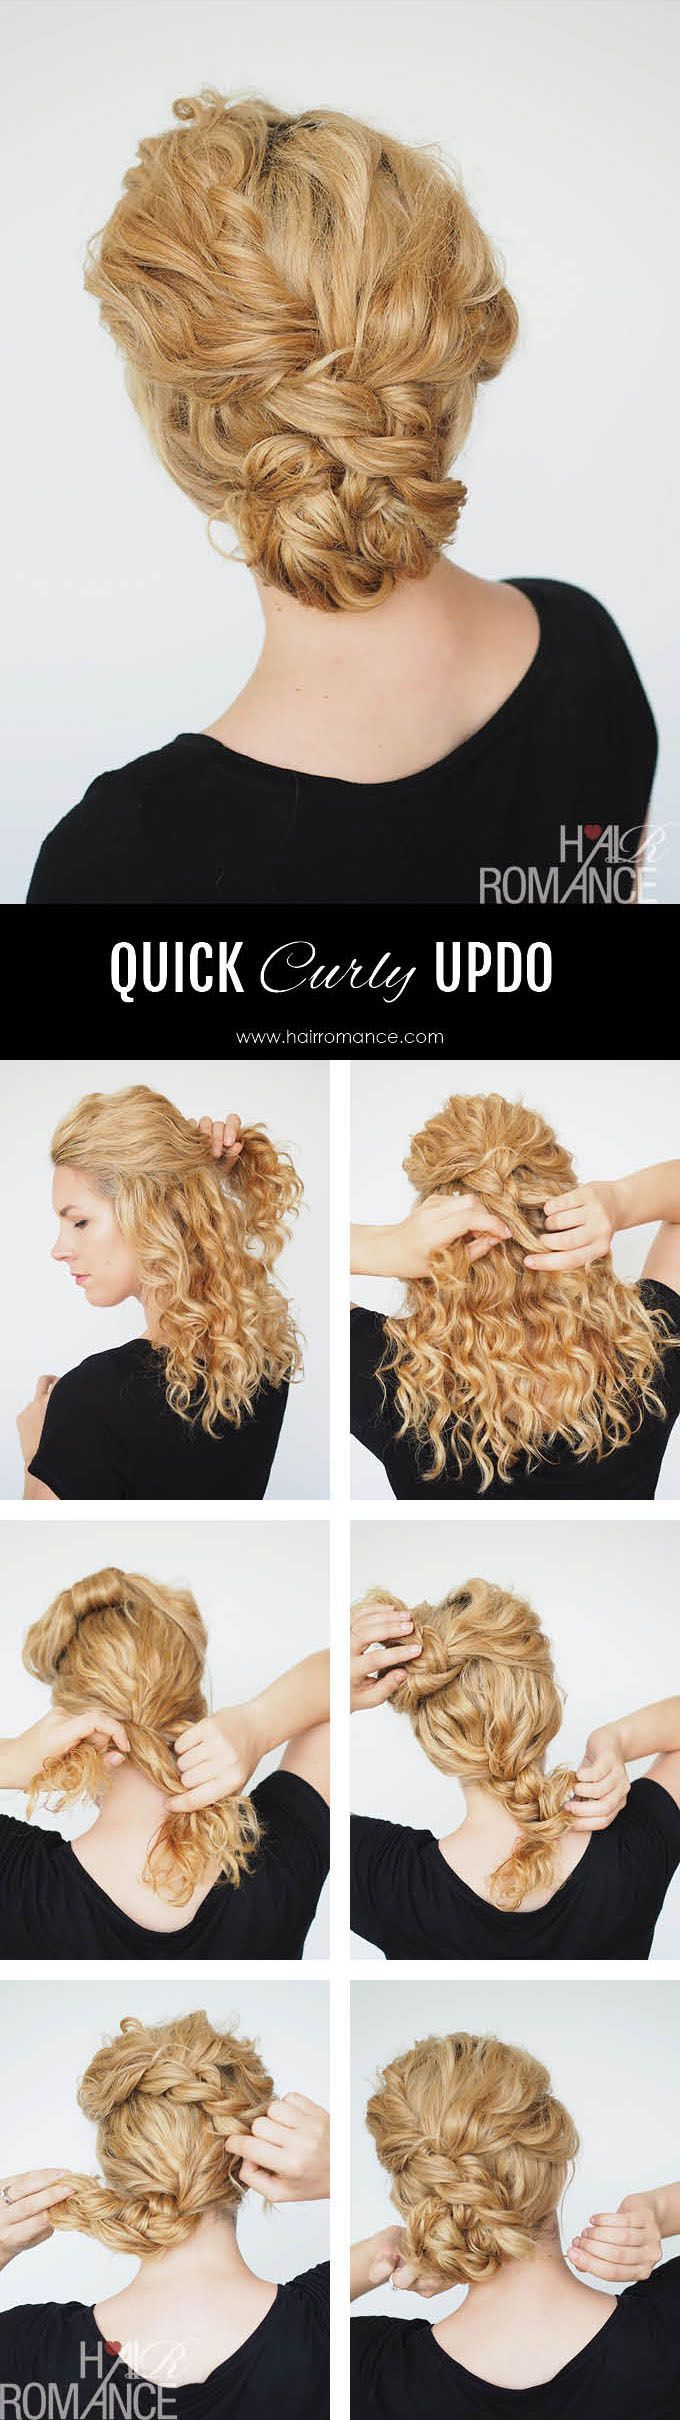 Best 25 easy curly updo ideas on pinterest hair updo easy 2 min updo for curly hair hair romance solutioingenieria Choice Image